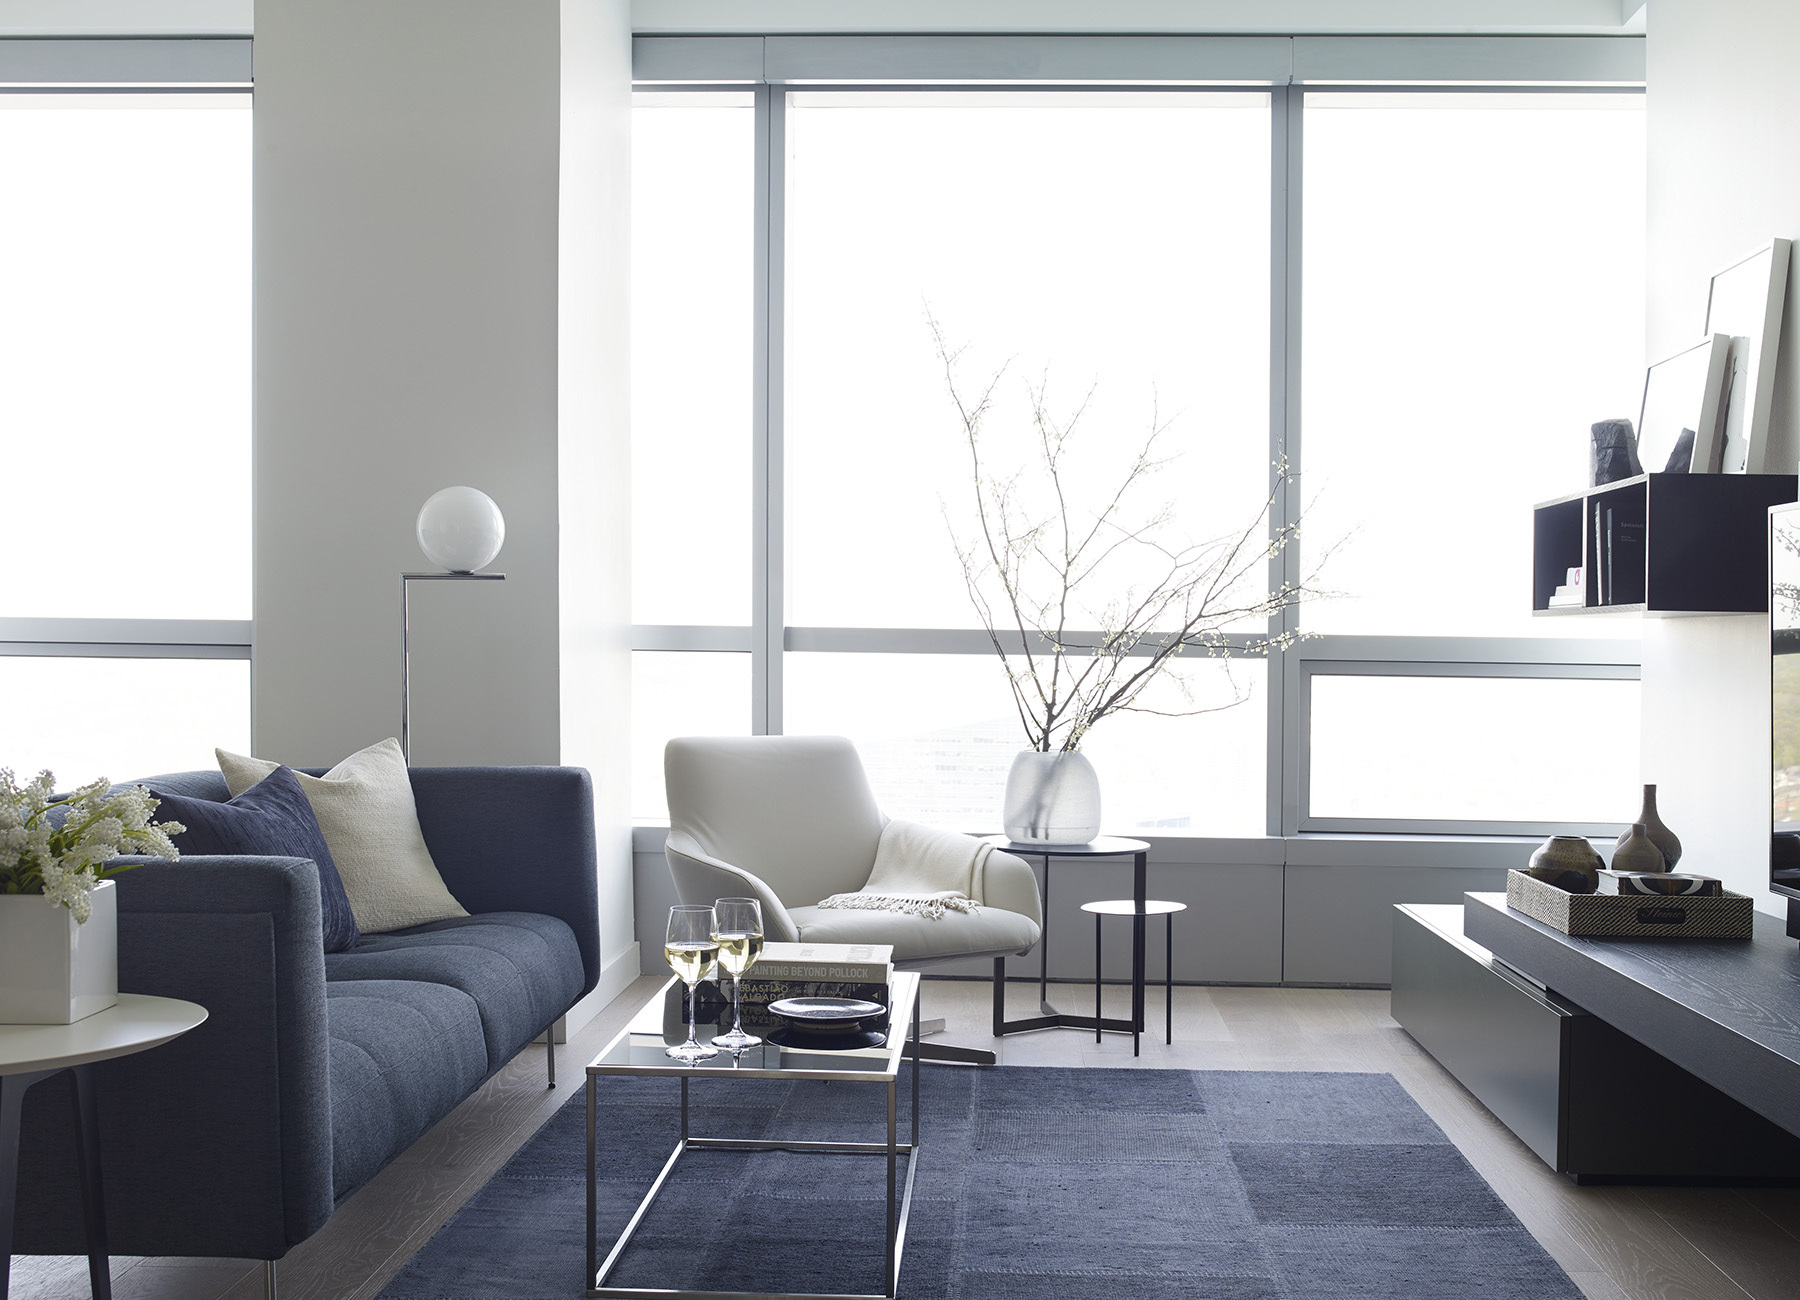 Living room with large windows and blue couch